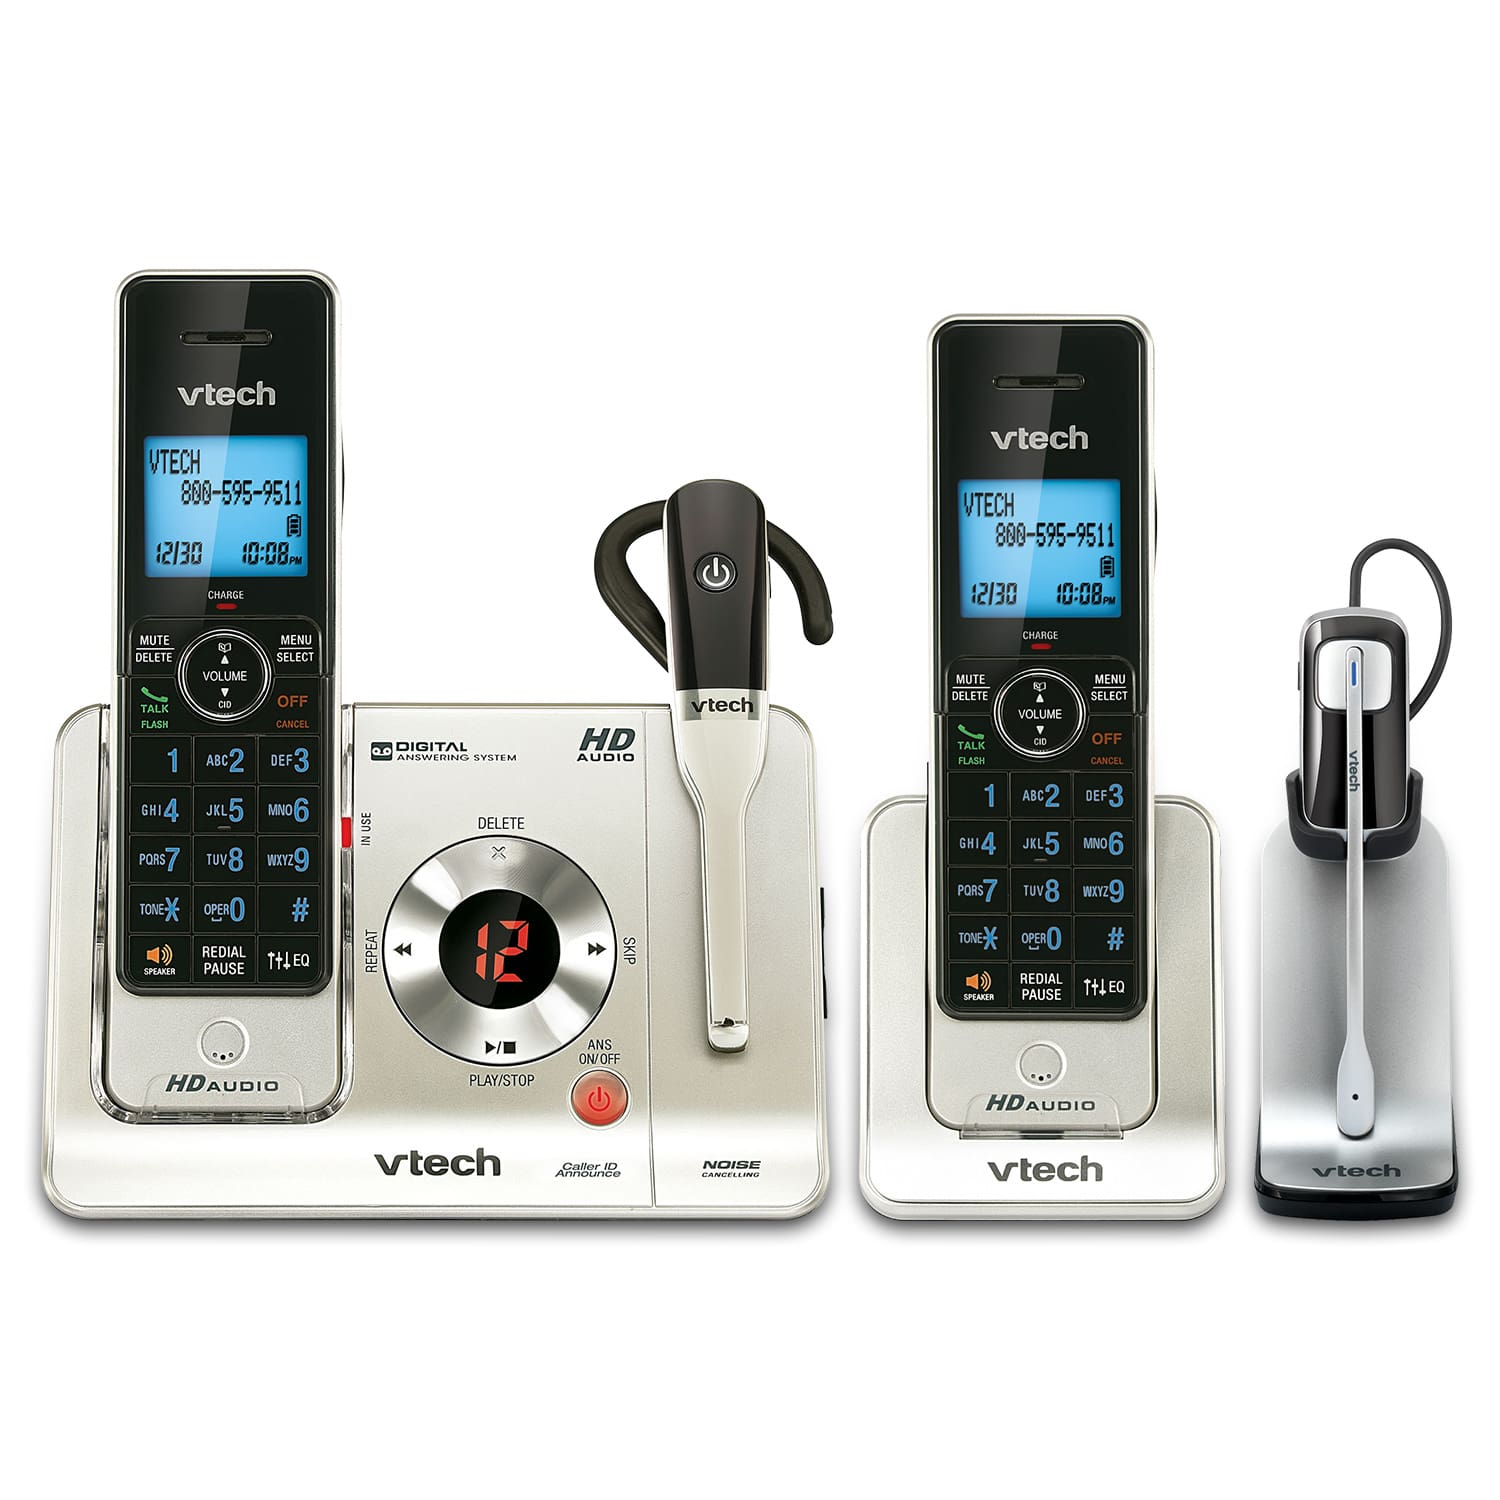 fac5762406d6 2 Handset Cordless Phone System with Two Cordless Headsets   LS6475-3 + one  IS6200   VTech® Cordless Phones